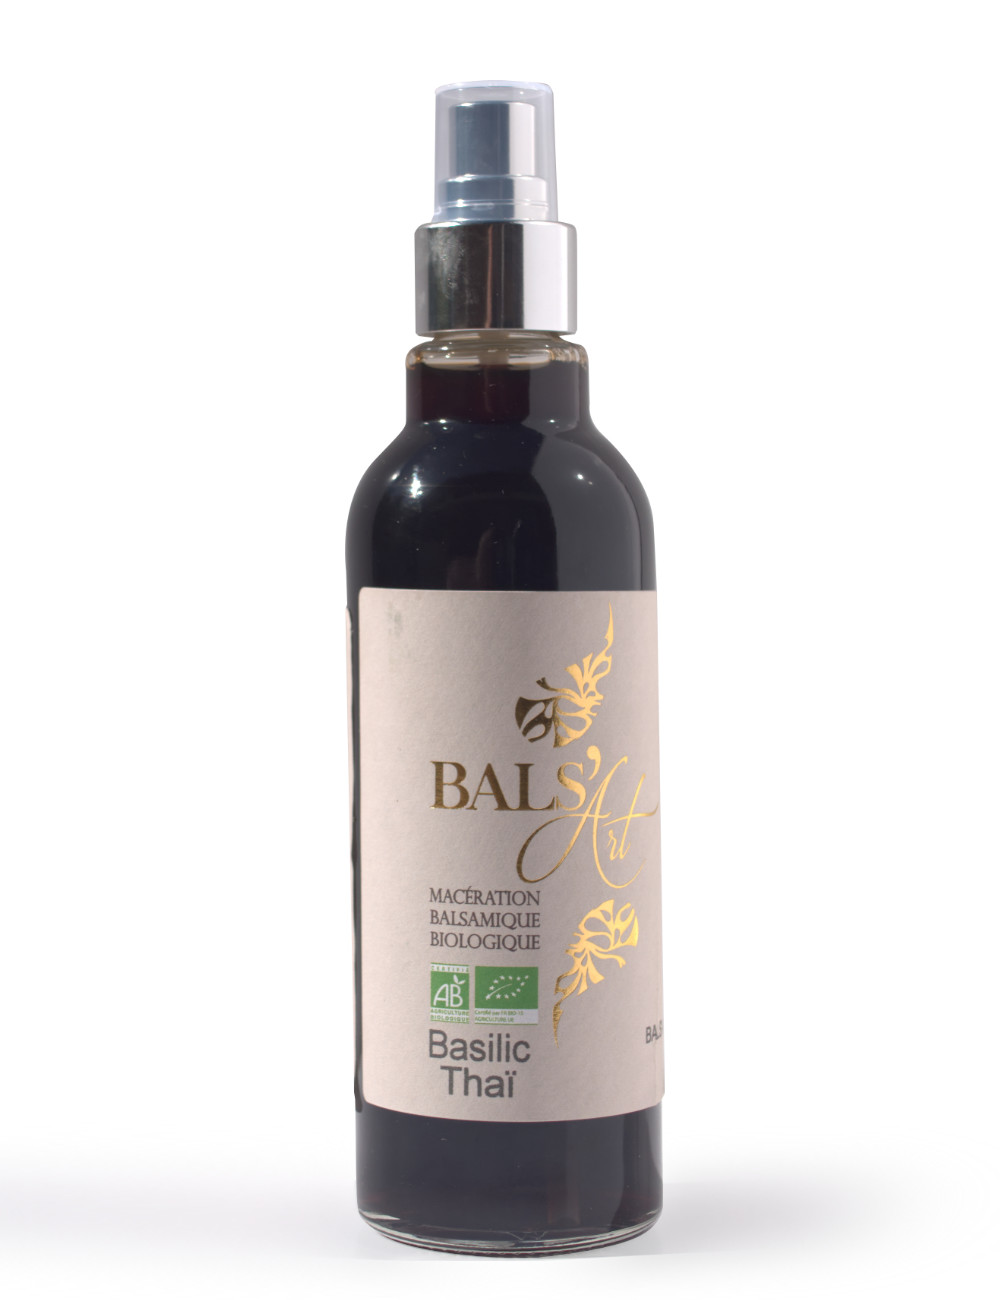 maceration-balsamique-basilic-thai